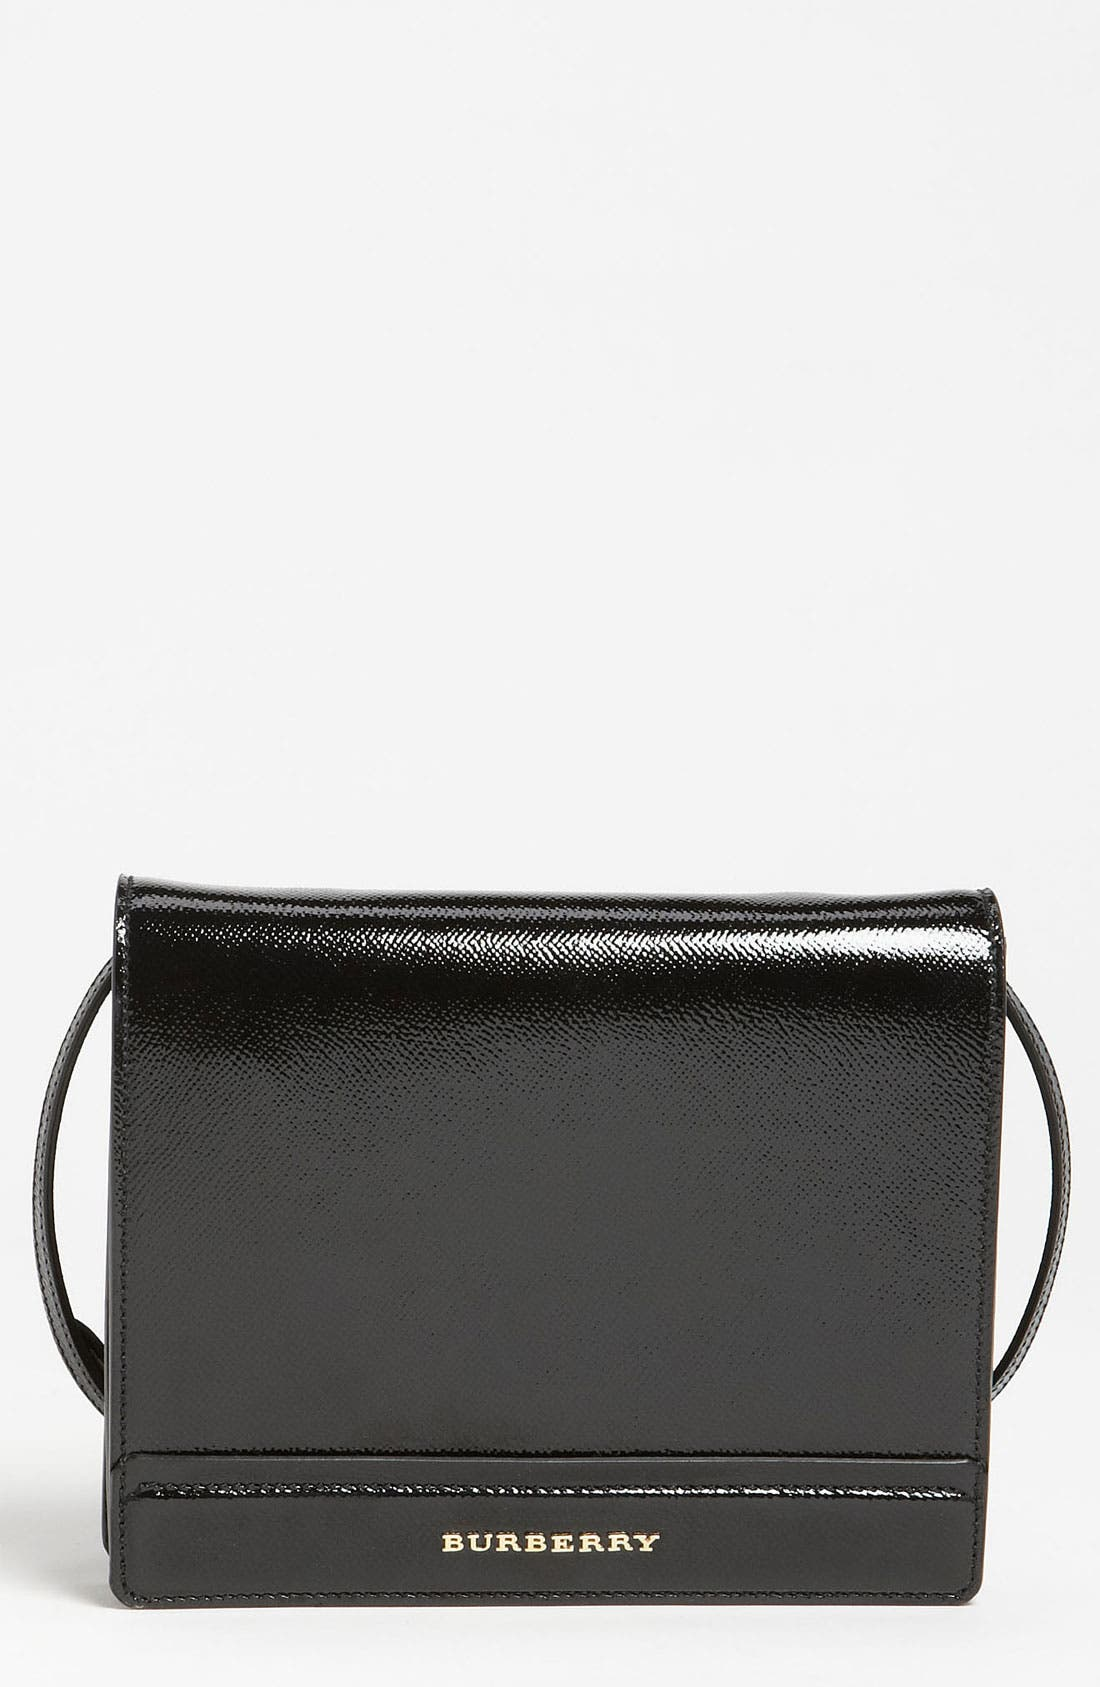 Alternate Image 1 Selected - Burberry Patent Leather Crossbody Bag